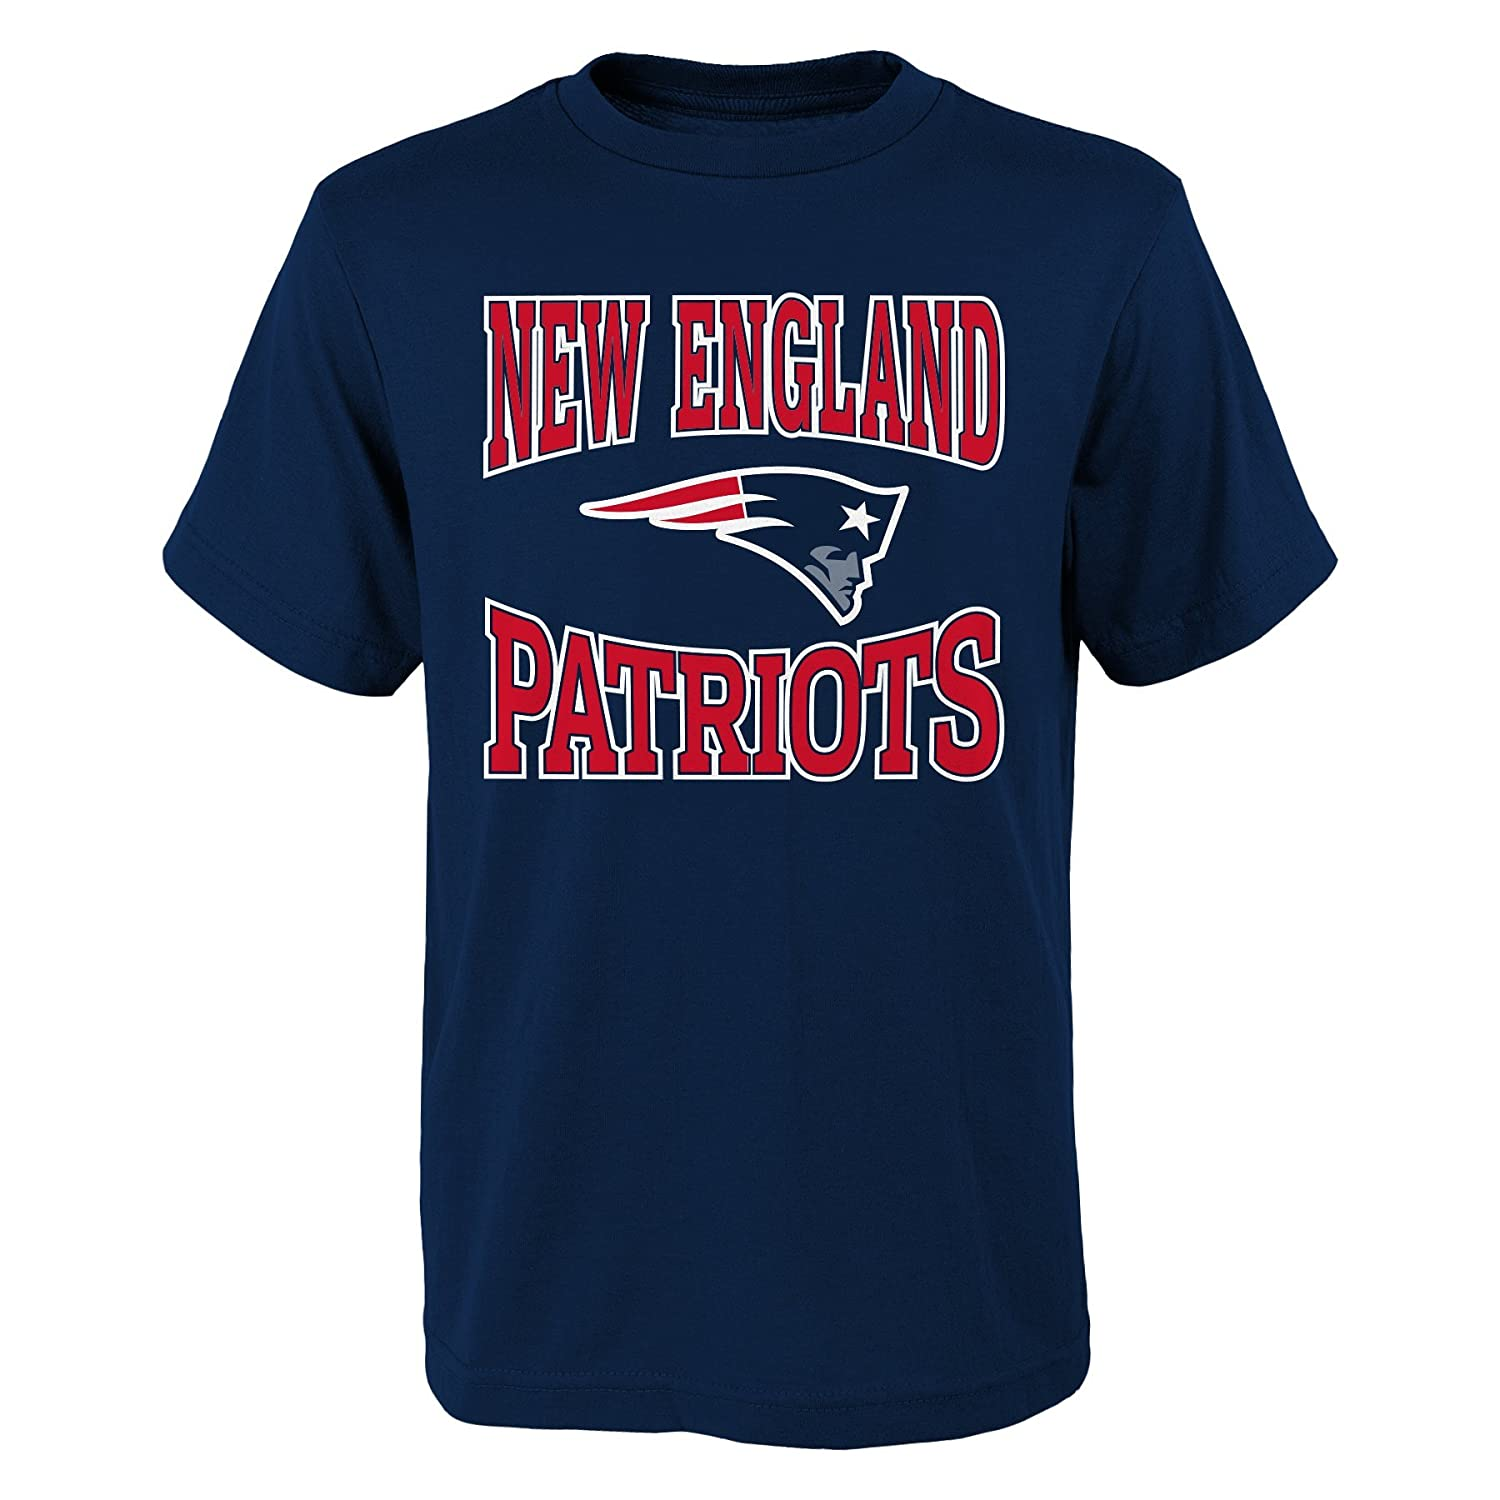 NFL New England Patriots Boys  Outerstuff 3-Piece Tee Set 3Piece Assorted Colors 10-12 Youth Medium